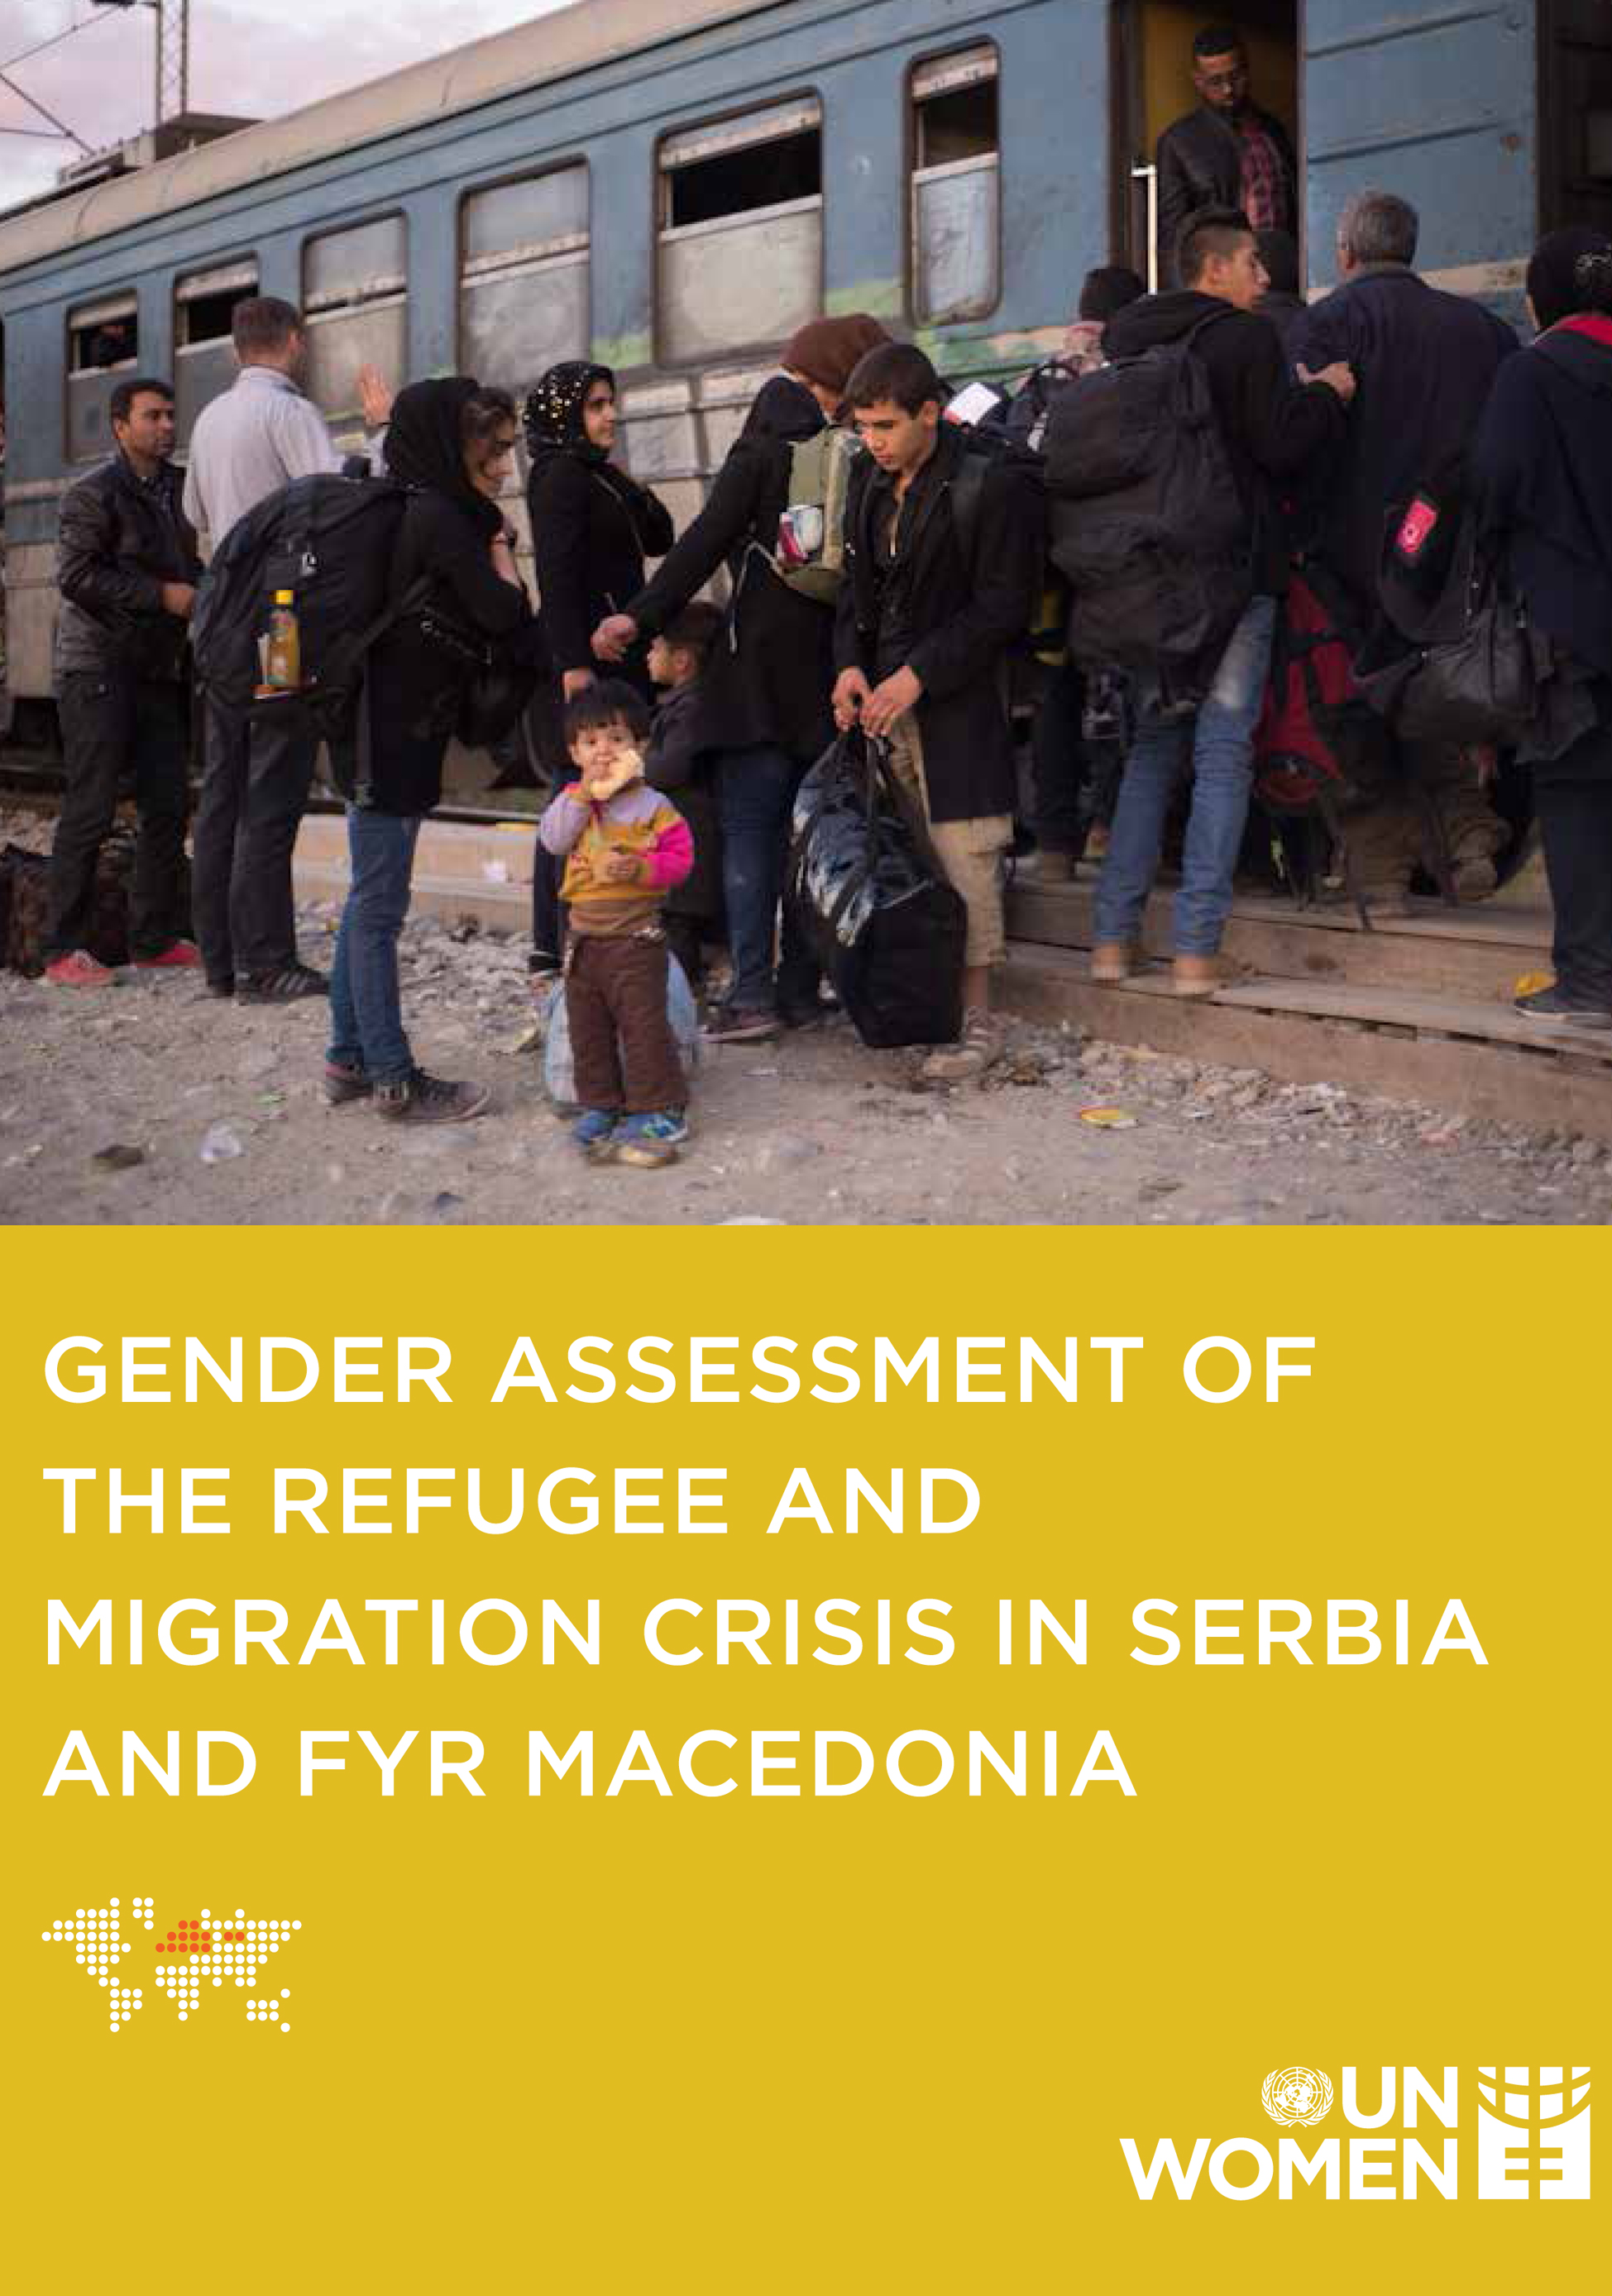 Gender Assessment of the Refugee and Migration Crisis in Serbia and North Macedonia